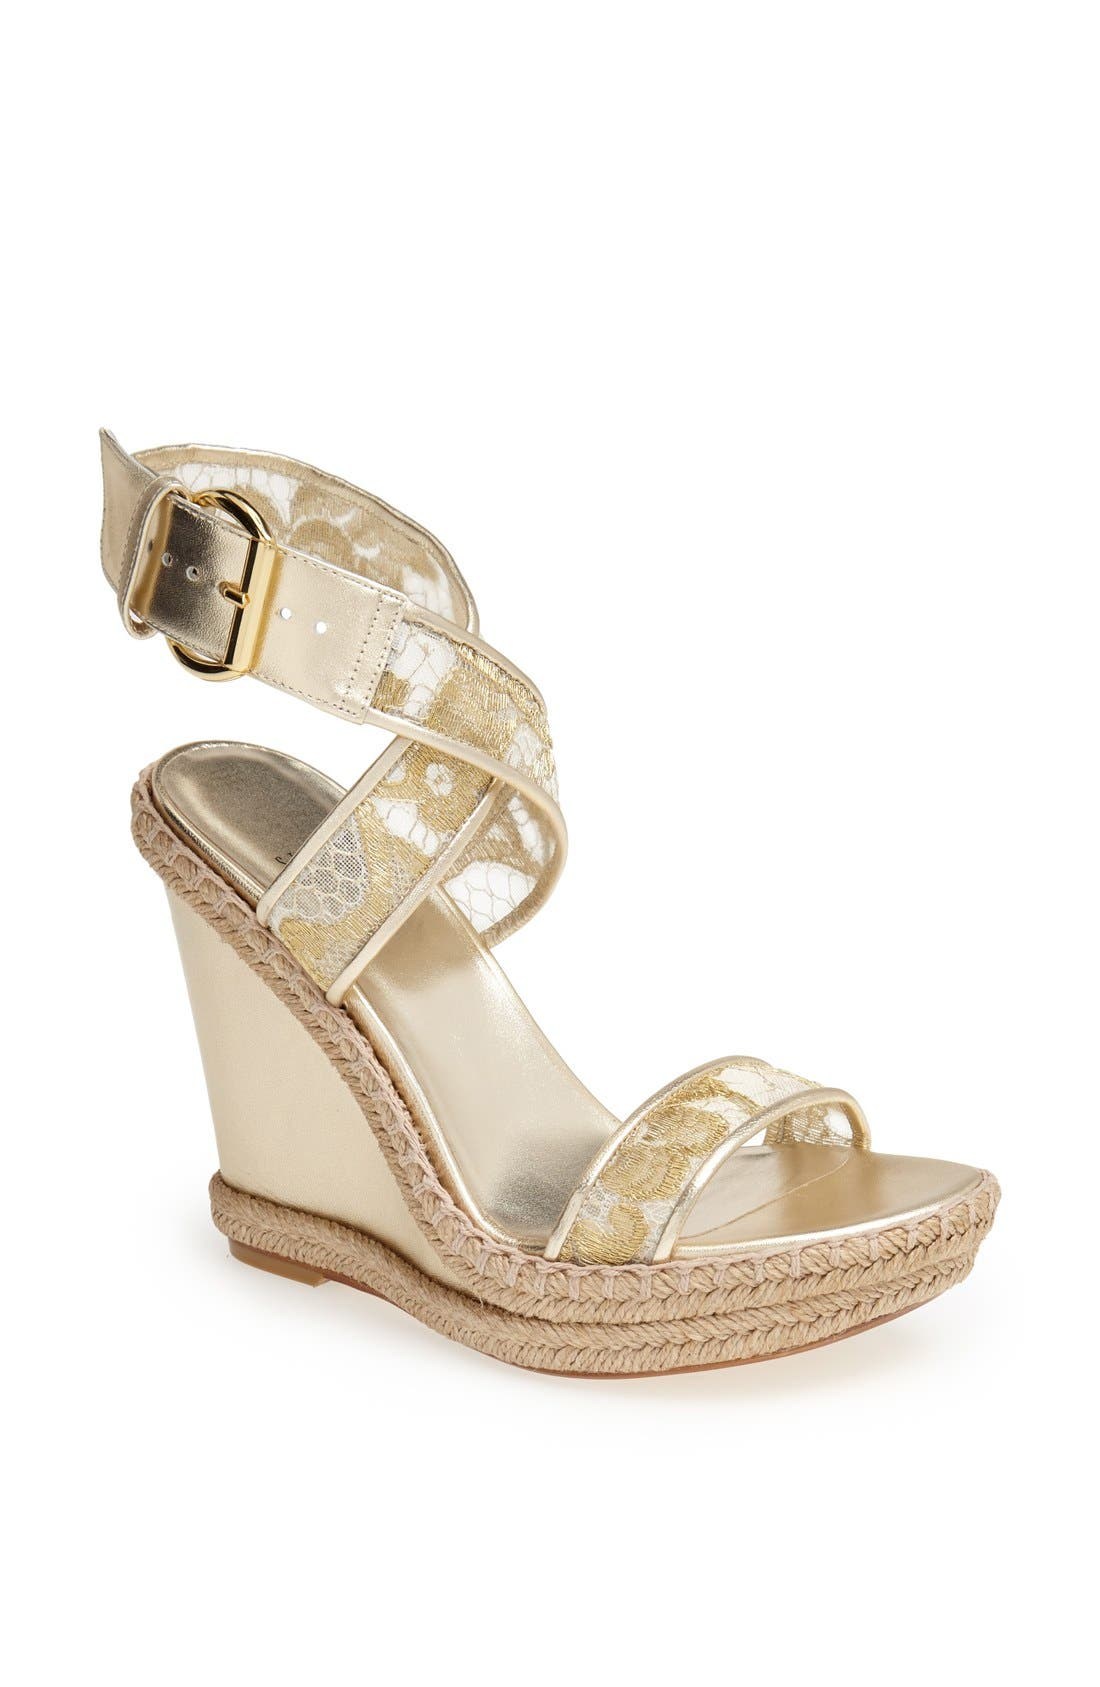 Alternate Image 1 Selected - Stuart Weitzman 'Guipure' Wedge Sandal